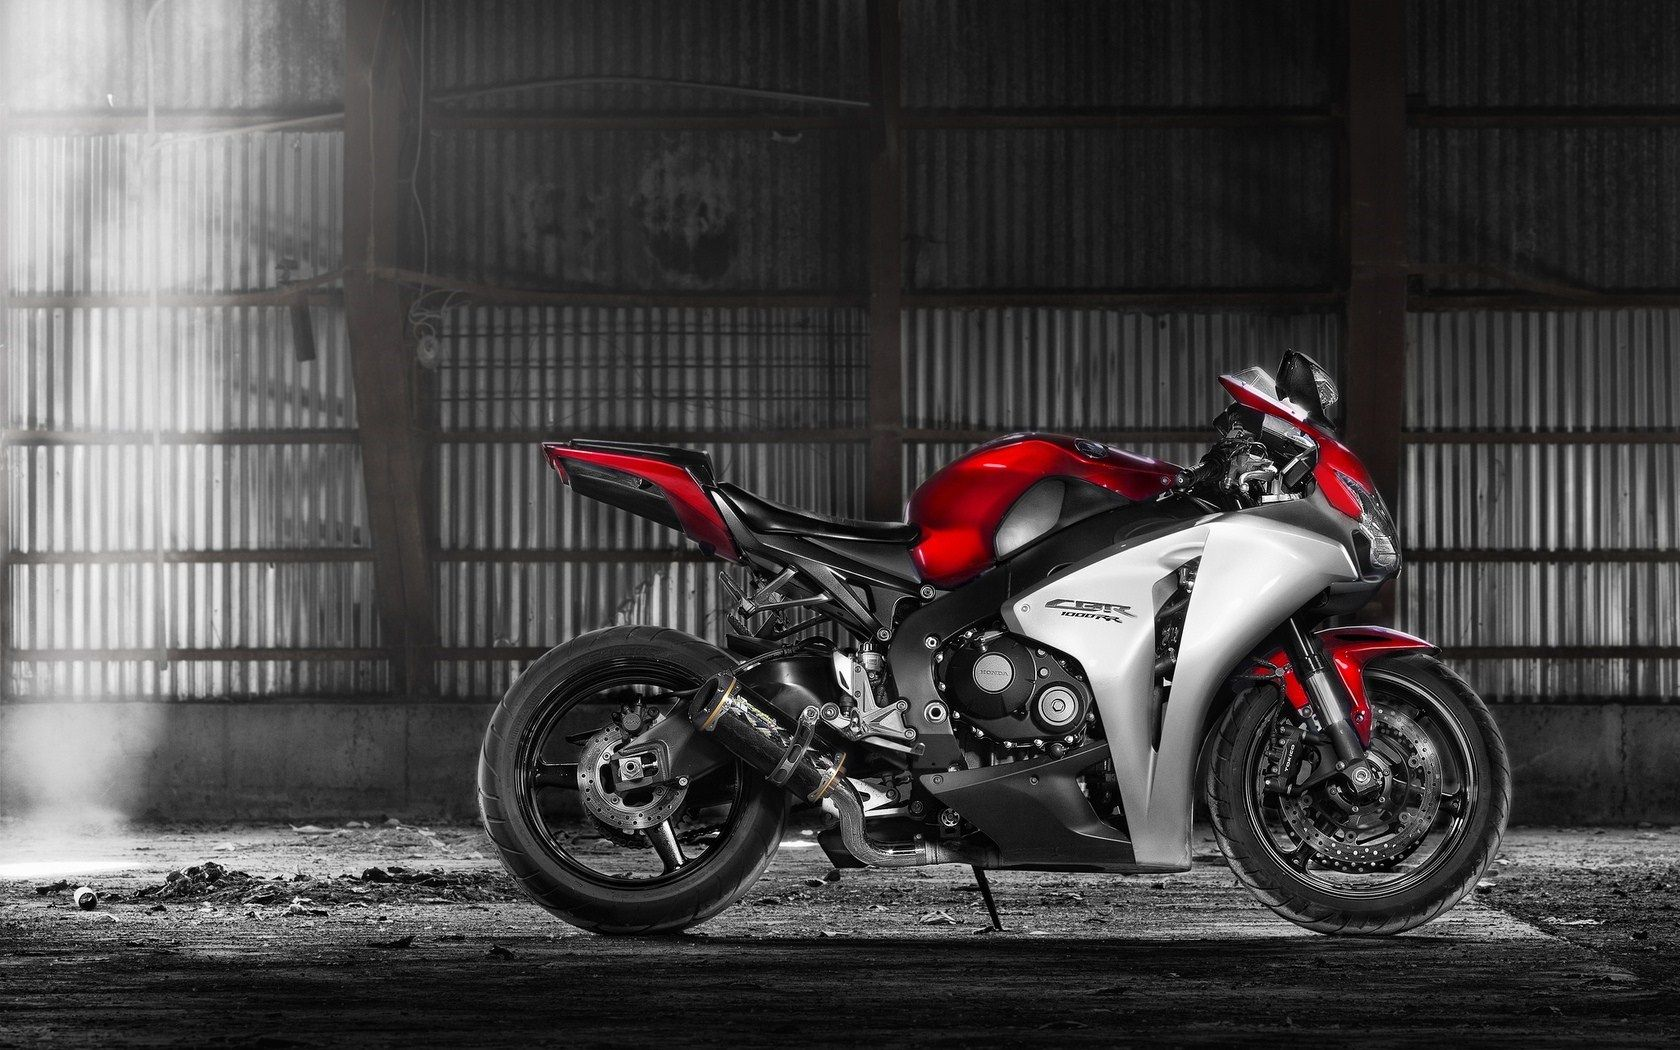 New Bike Mobile Wallpapers In 2015